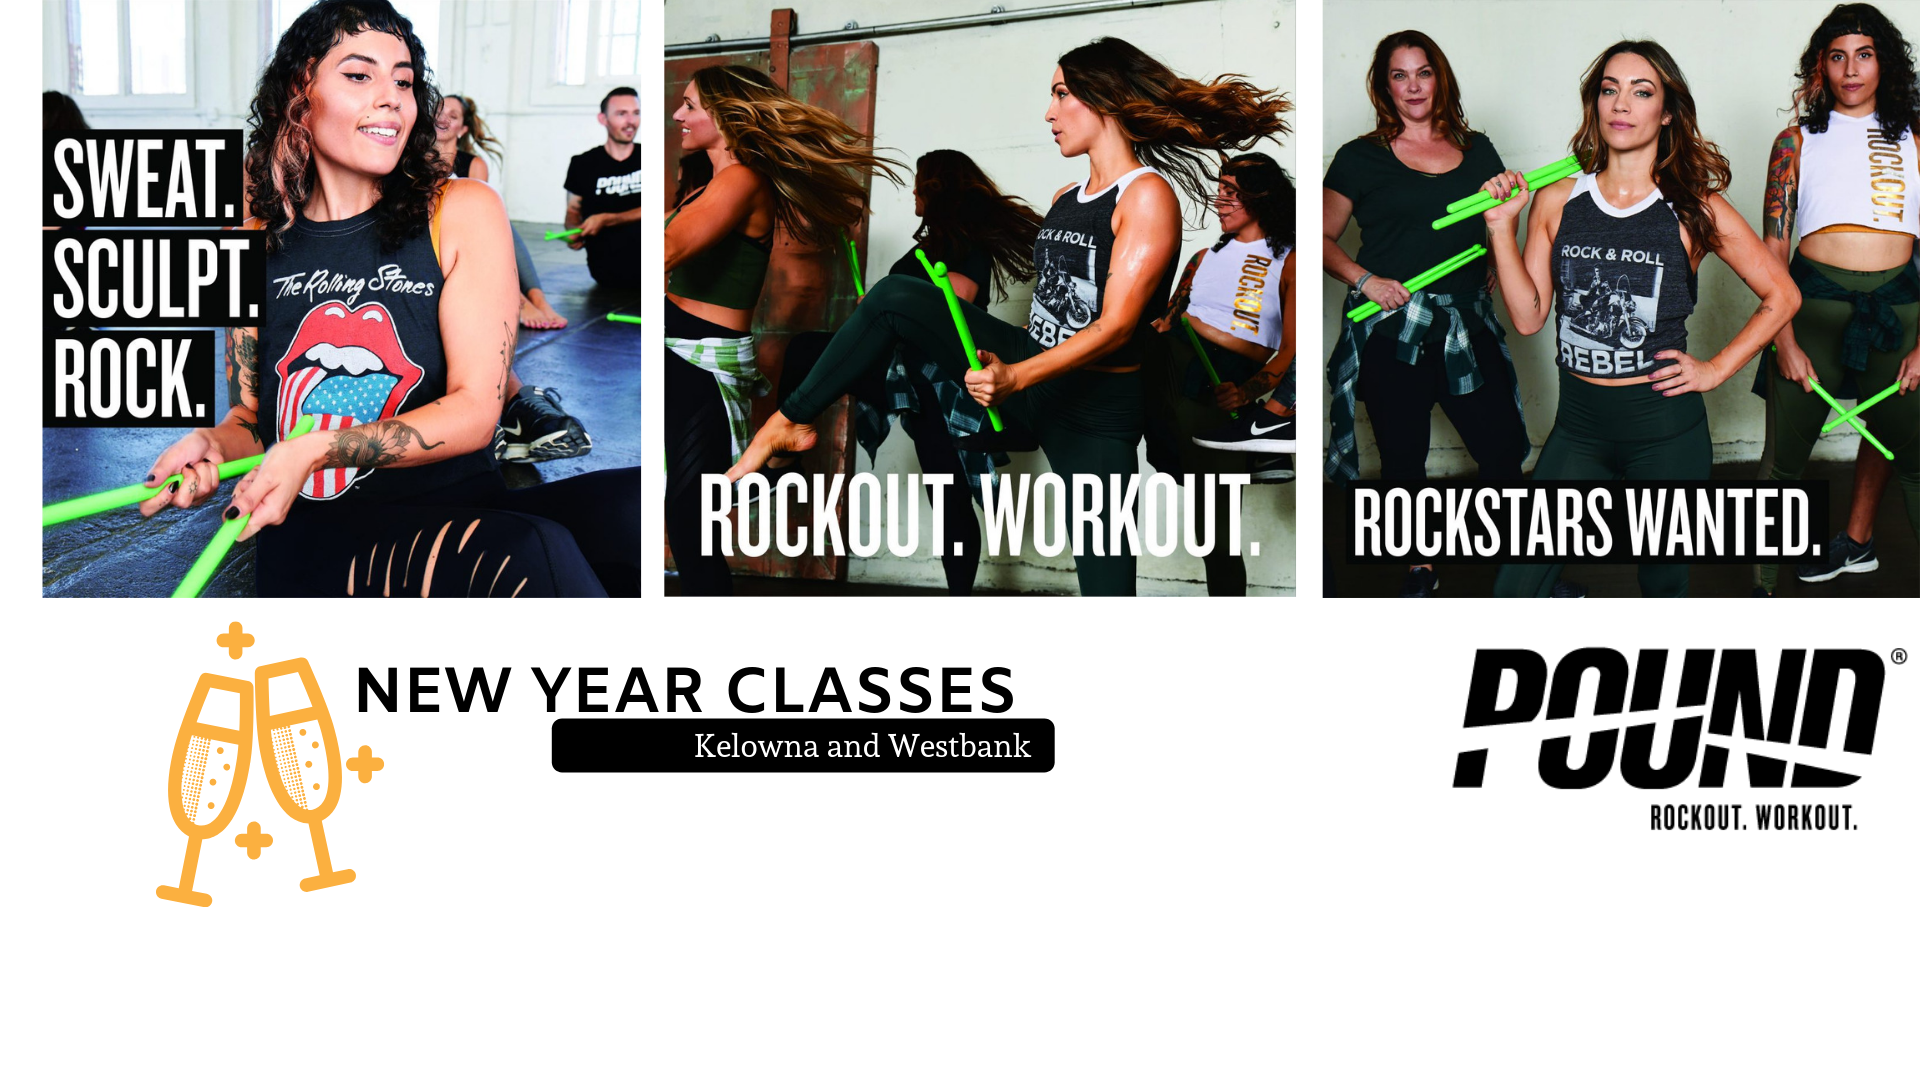 NEW YEAR CLASSES banner